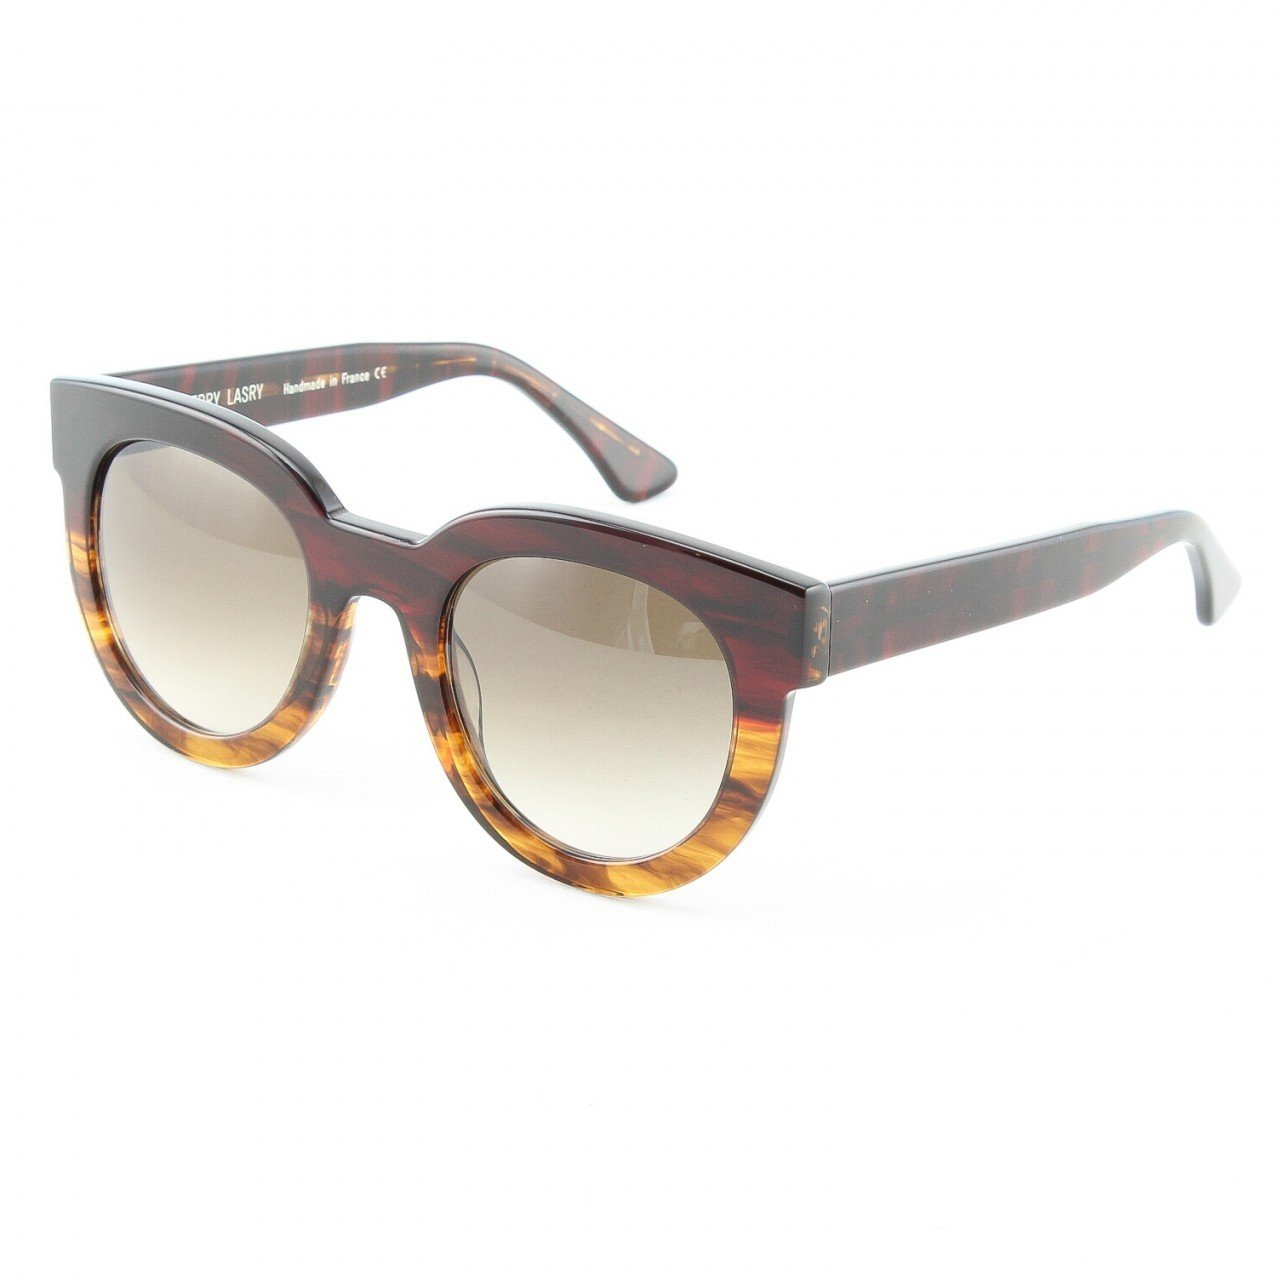 Thierry Lasry Therapy Sunglasses 1003 Brown Havana w/ Gray Gradient Lenses NWT